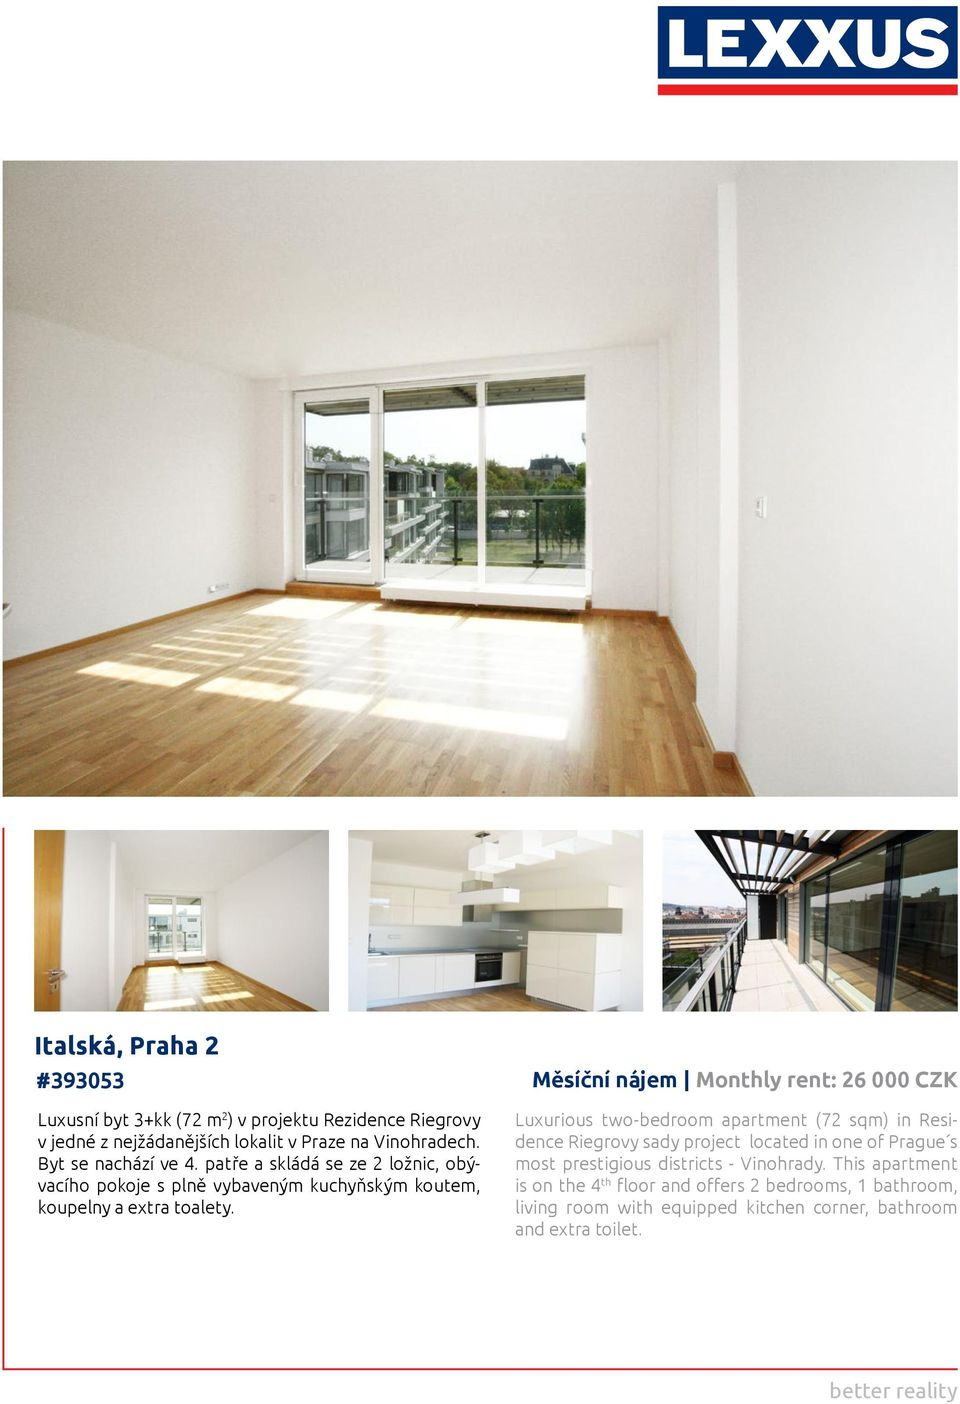 Měsíční nájem Monthly rent: 26 000 CZK Luxurious two-bedroom apartment (72 sqm) in Residence Riegrovy sady project located in one of Prague s most